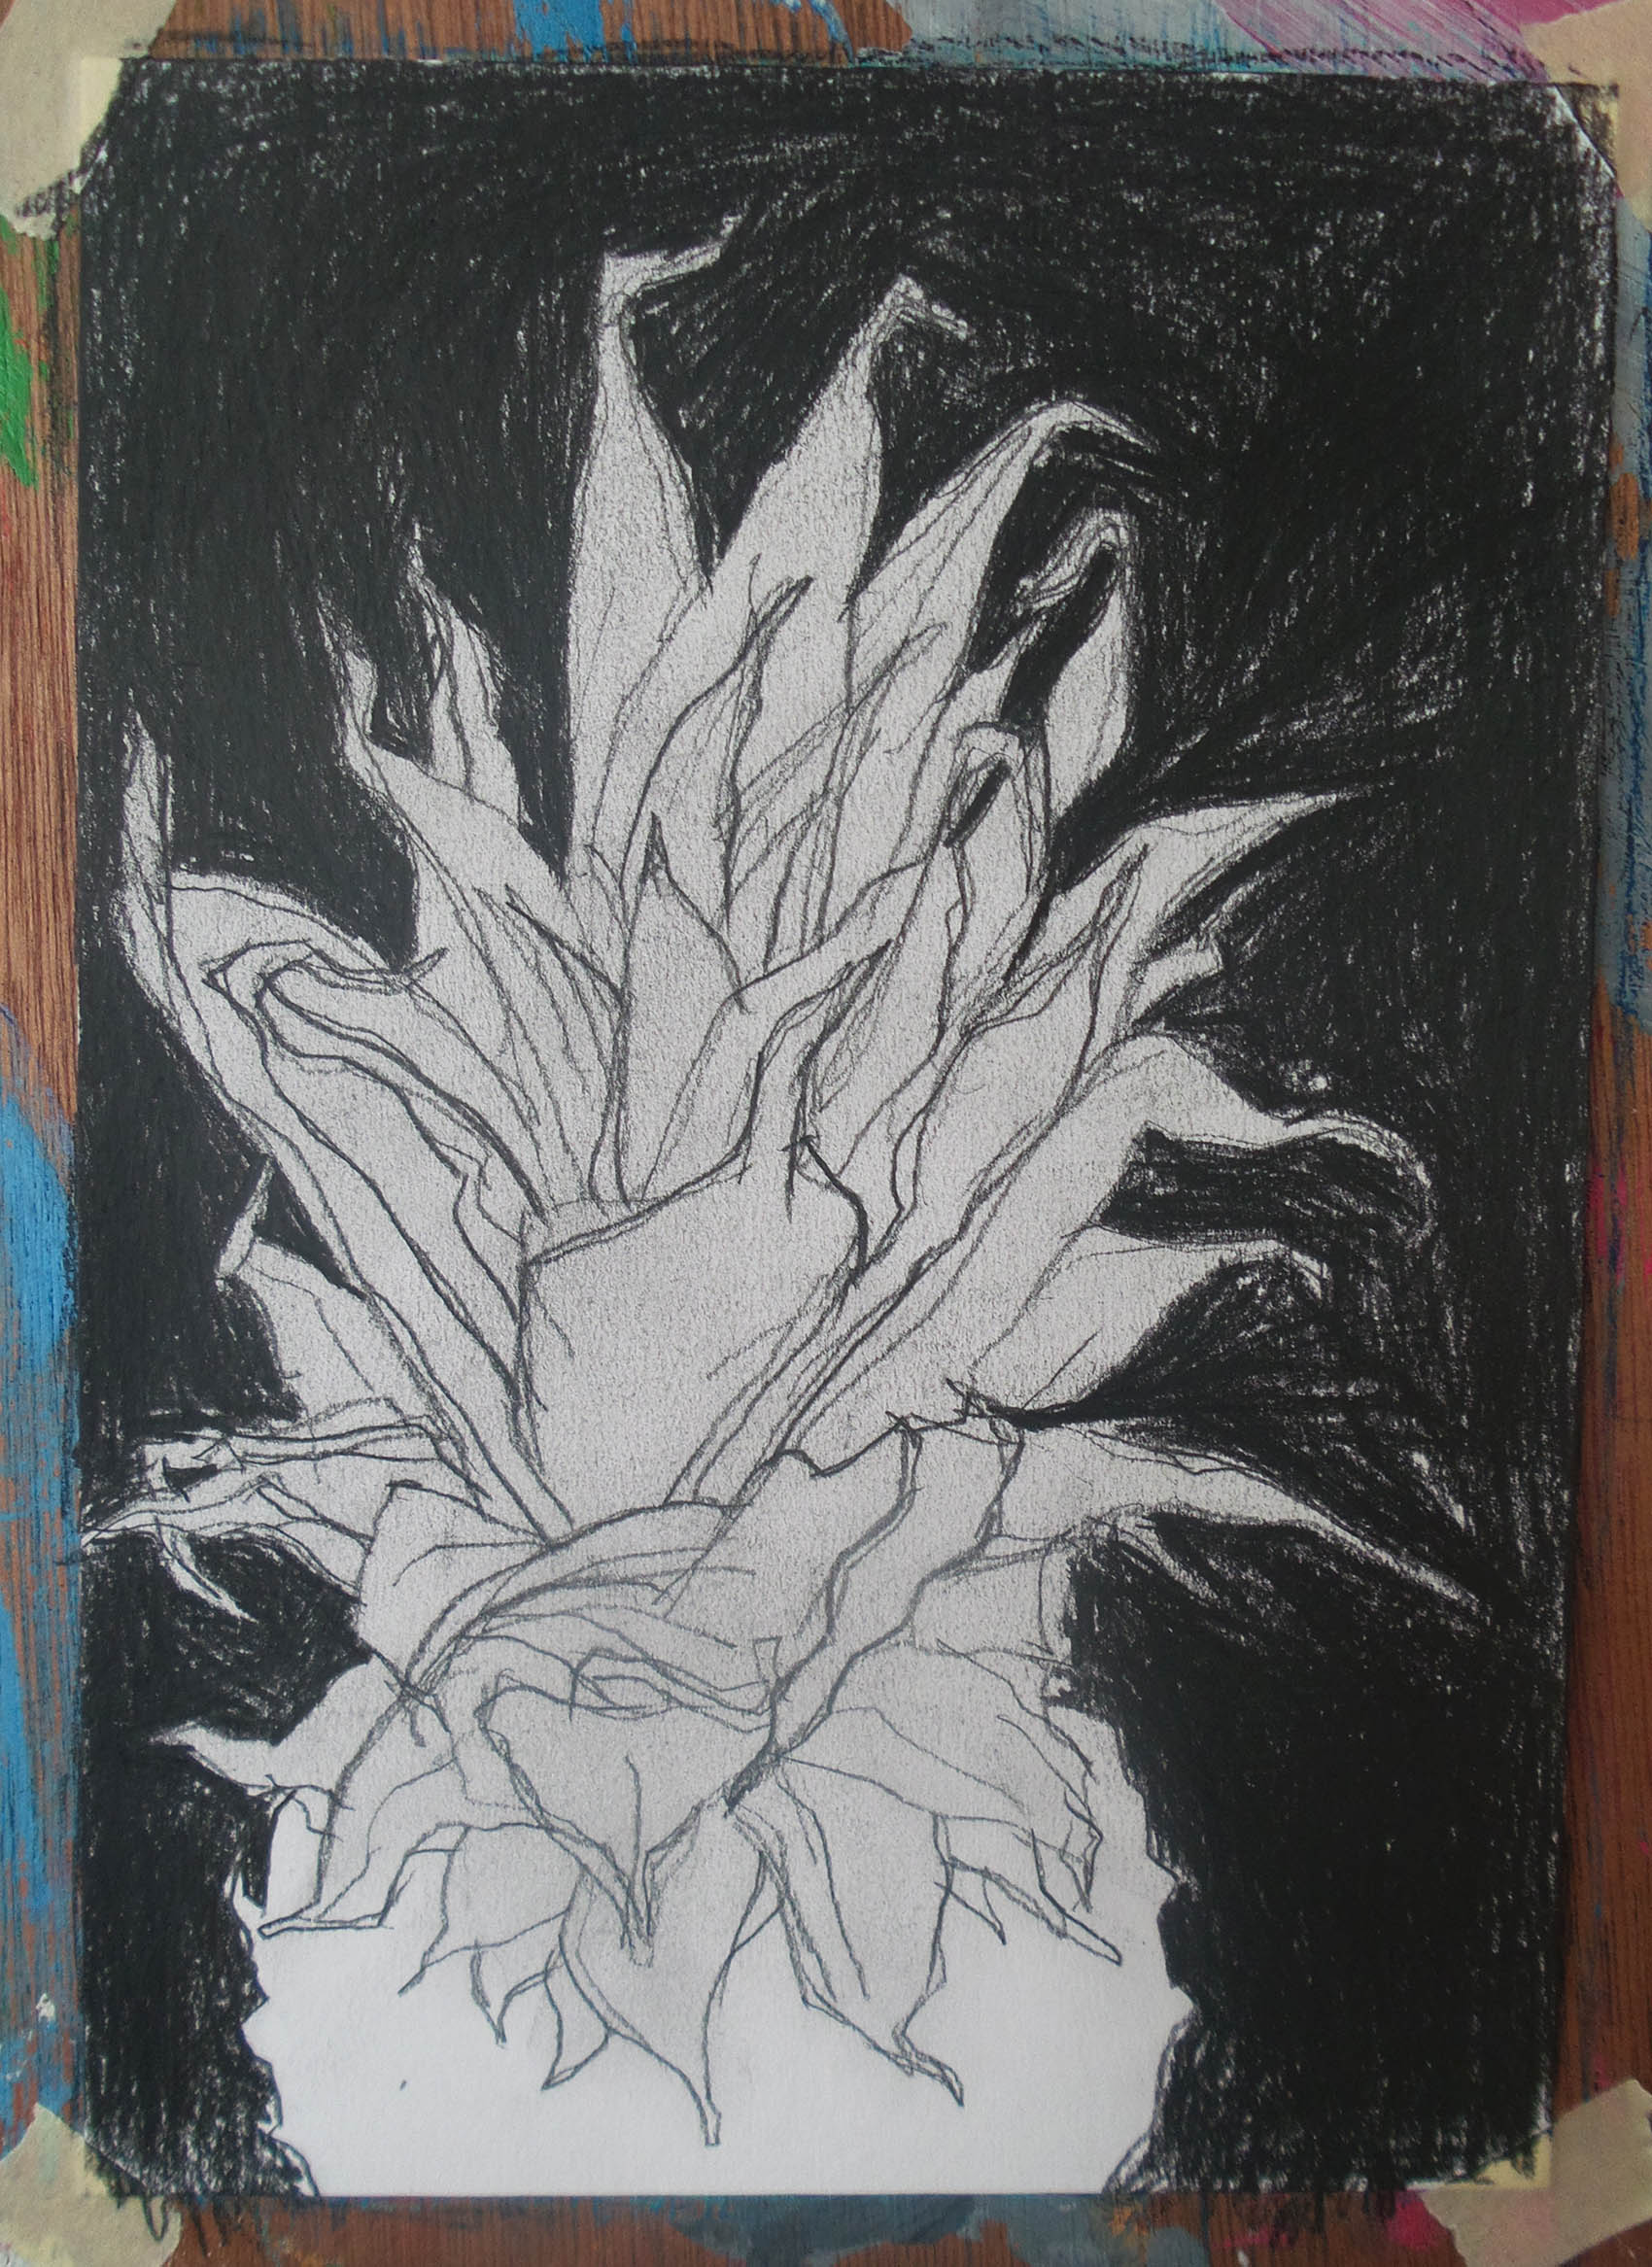 zwart-wit tekening ananas in zwart black and white drawing pineapple